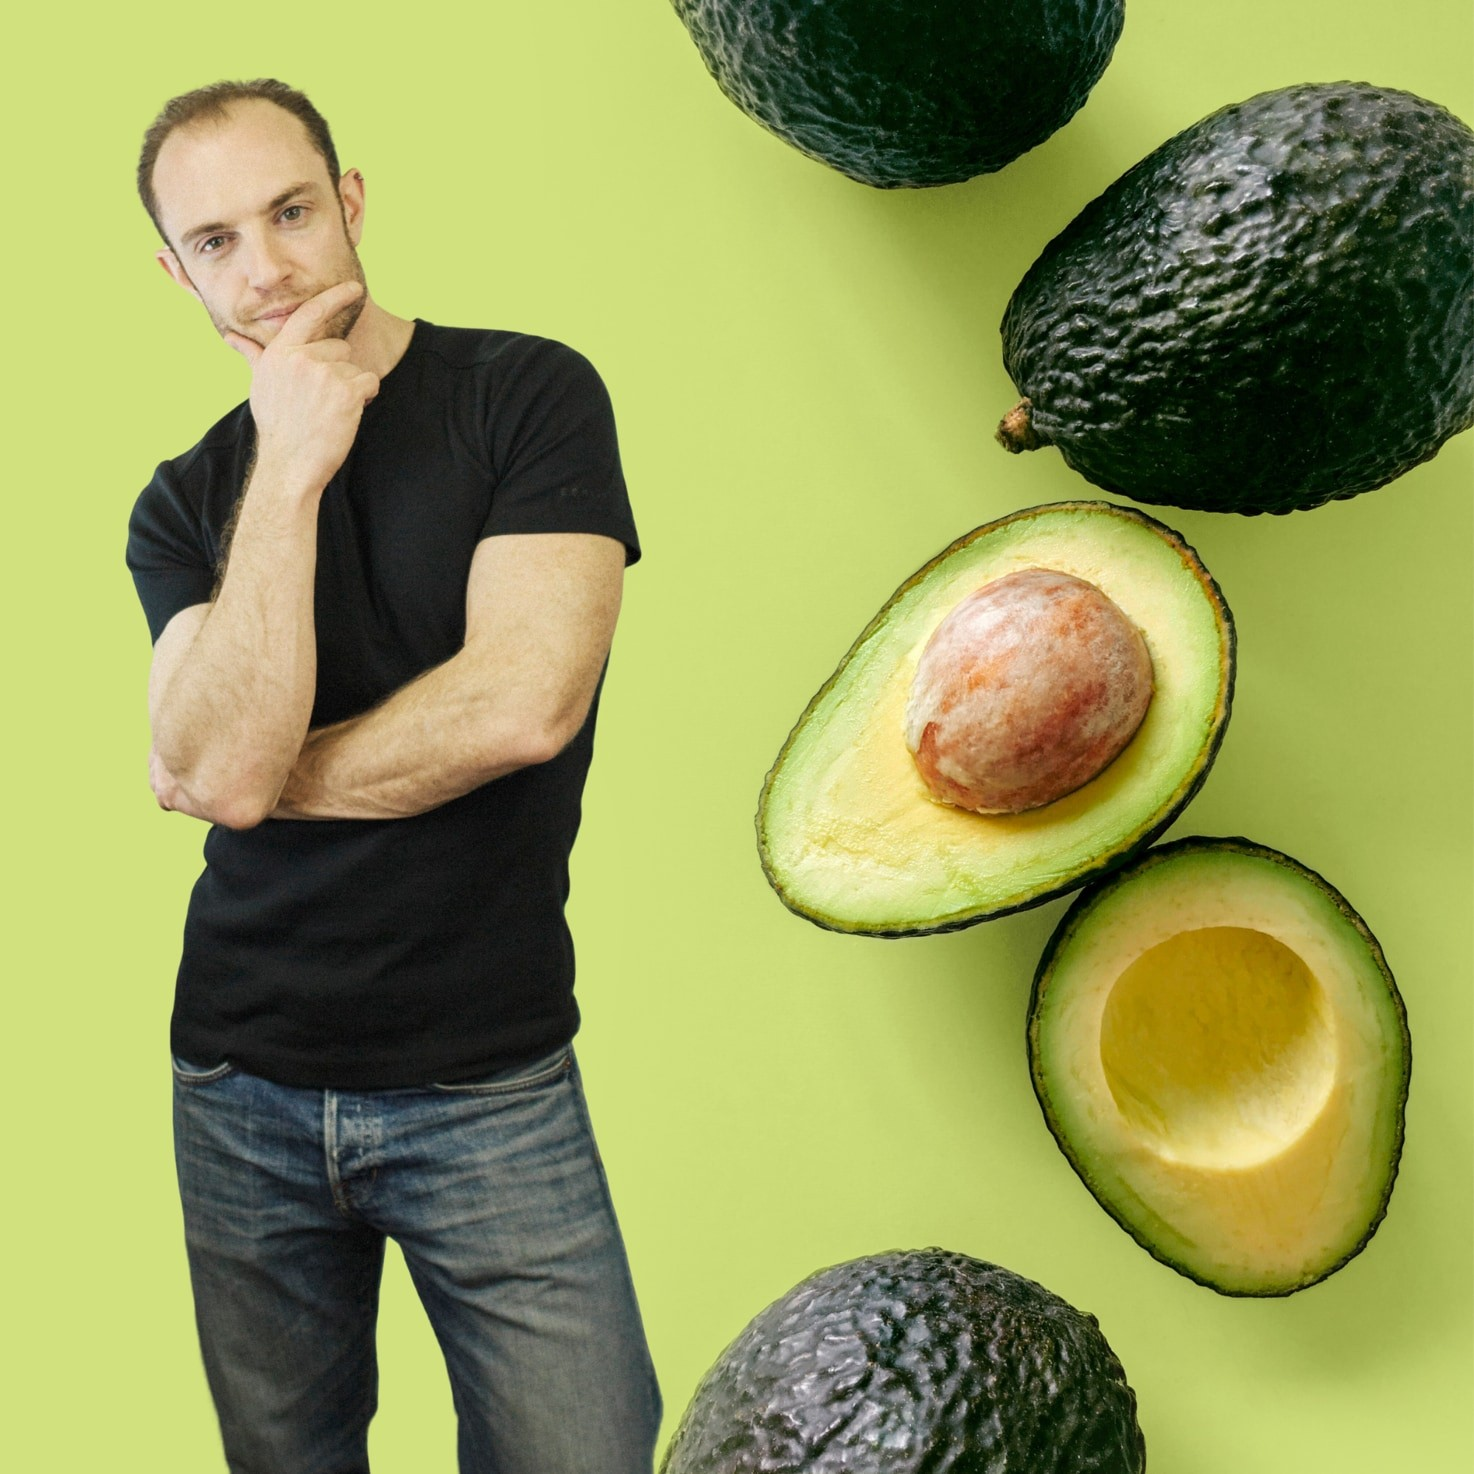 Dave is standing near the avocados on the green background | Hurry The Food Up